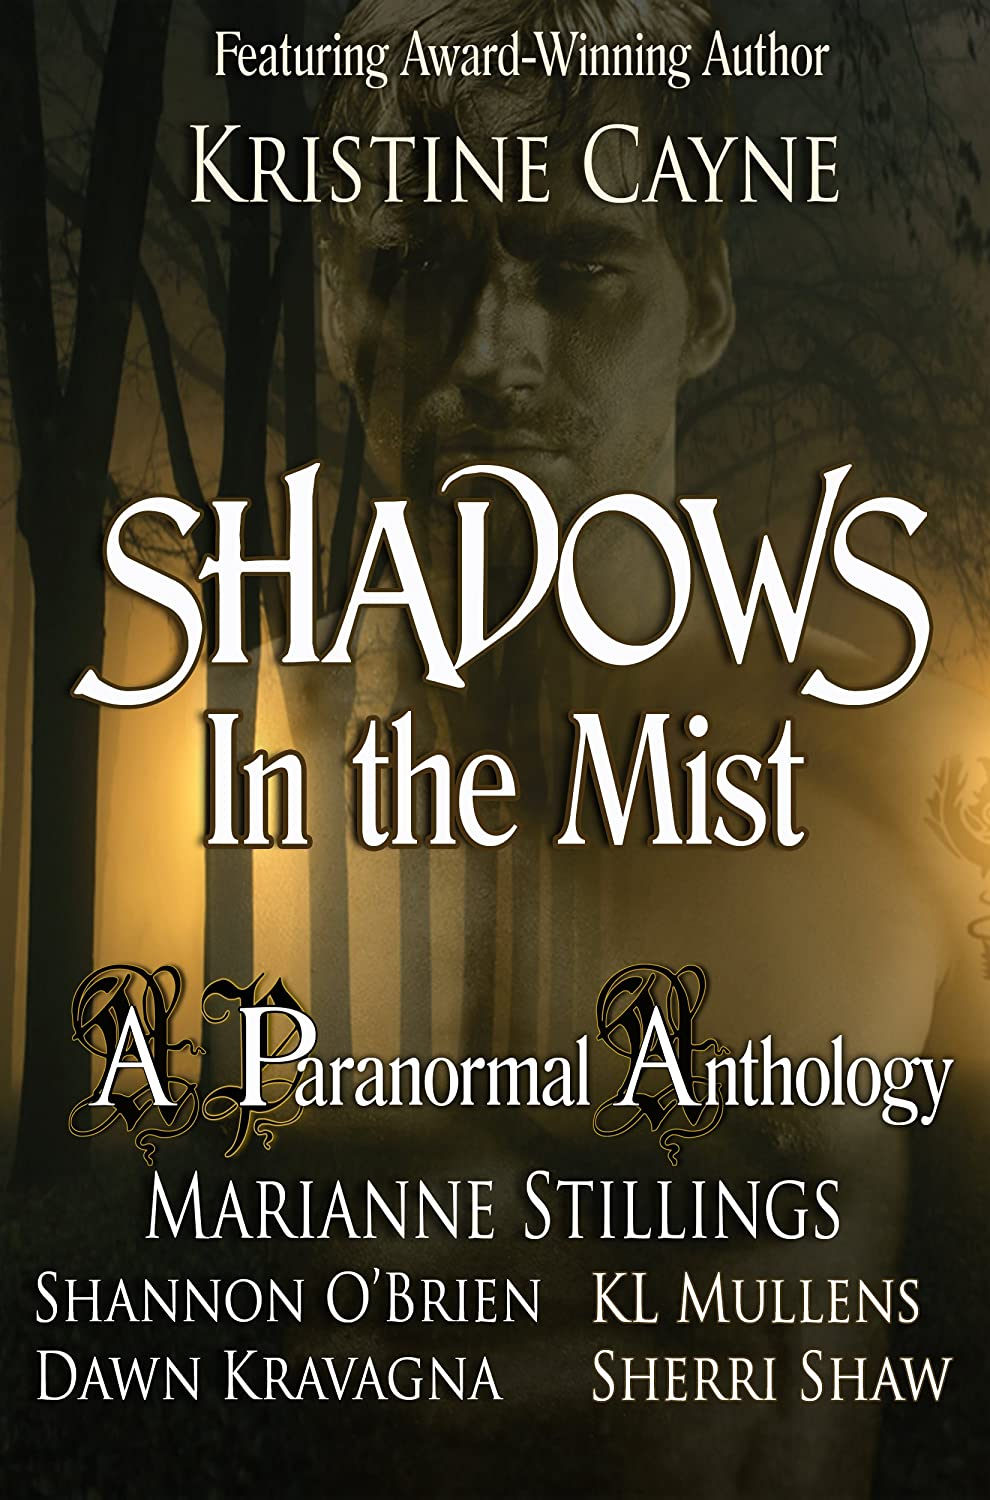 Shadows in the Mist: A Paranormal Anthology on Amazon